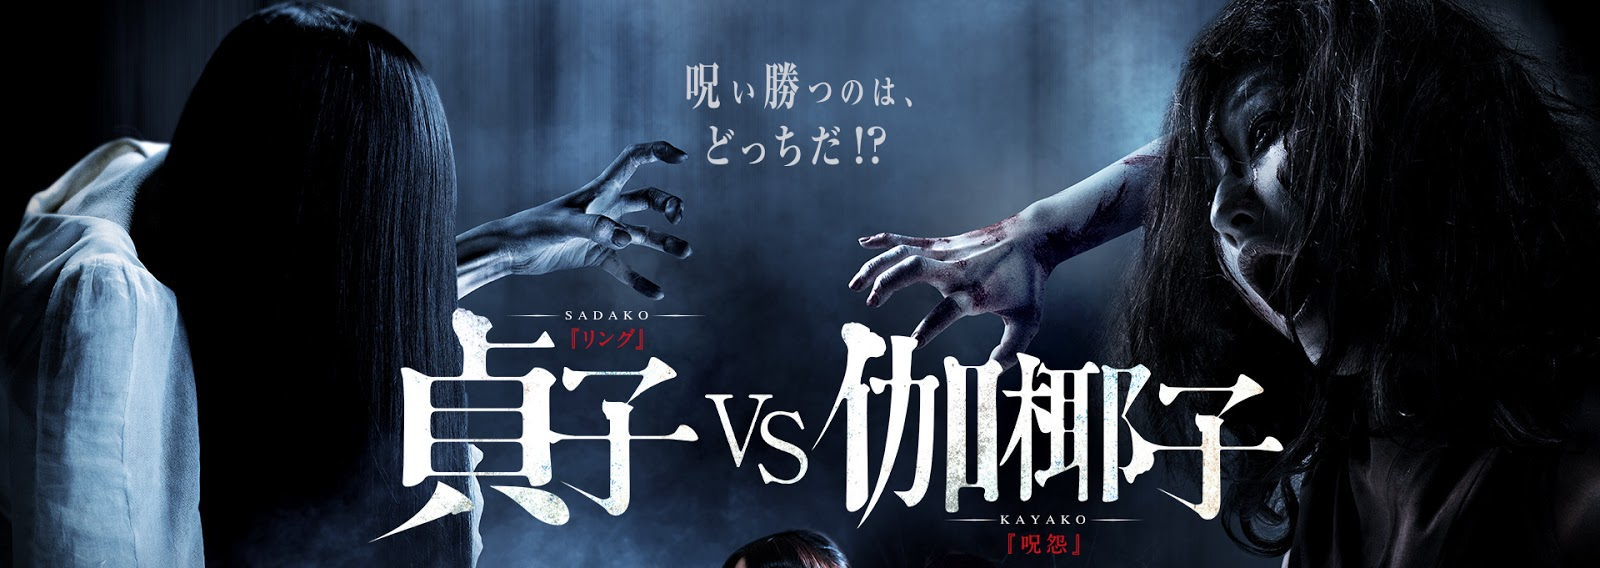 Sadako vs. Kayako (貞子 vs. 伽椰子): First Look - Undead Monday